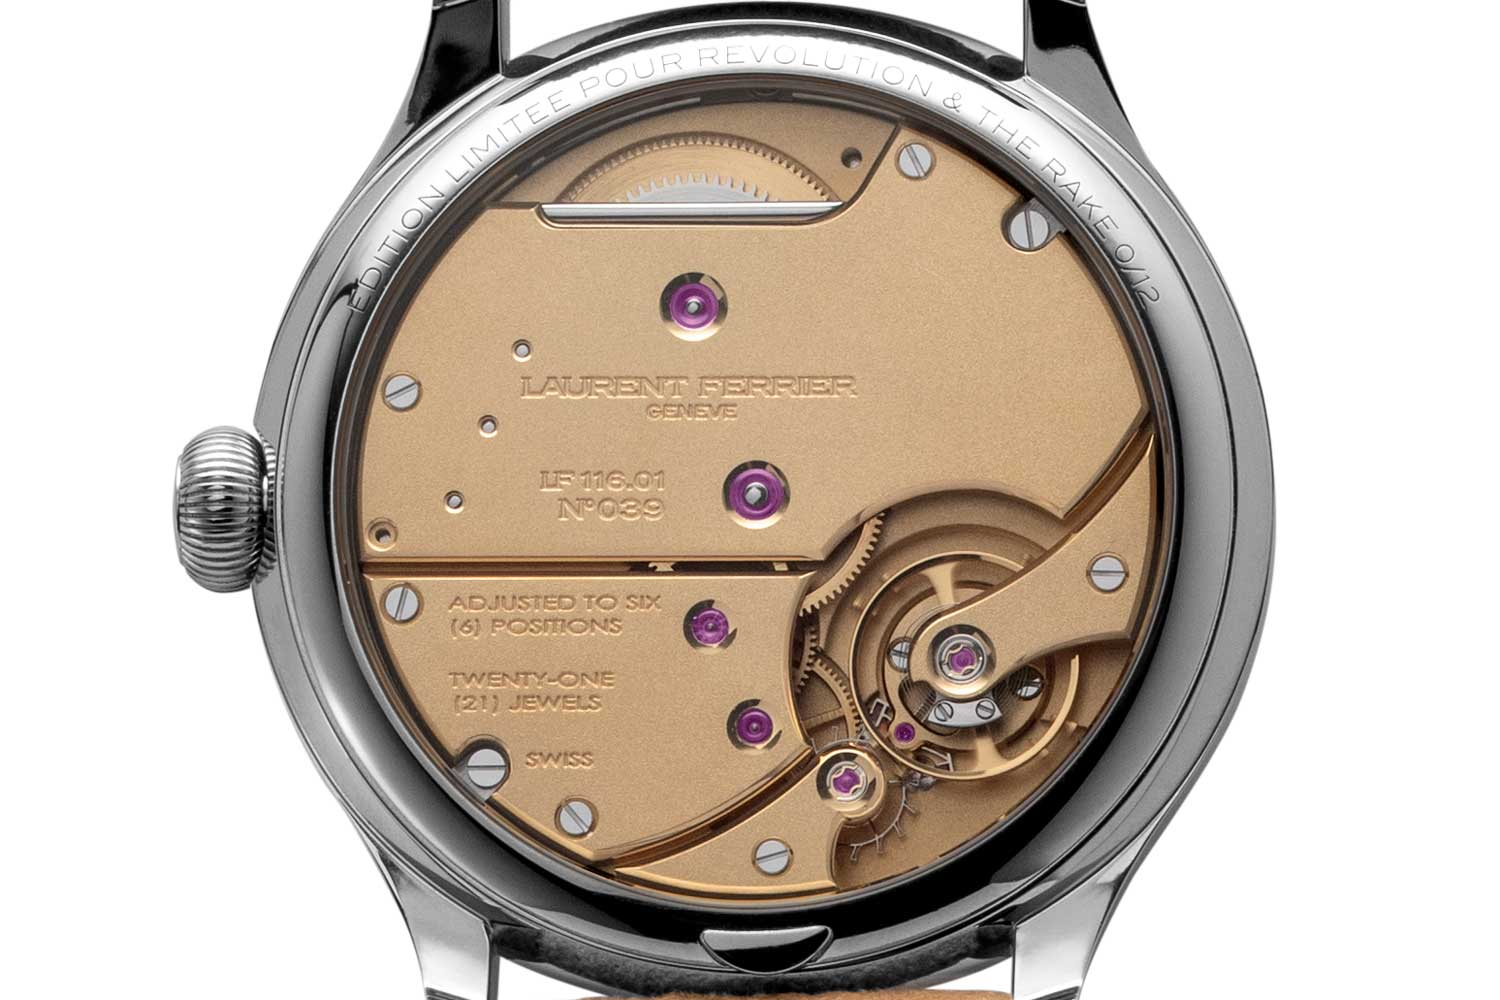 Instead of the sandblasted black rhodium finish that is typical of the LF 116.01 calibre, we requested a finish that was used only once before on the Laurent Ferrier Montre École in steel; this is a yellow-gold or champagne finish, micro-sandblasted to appear almost like a frosted finish (©Revolution)